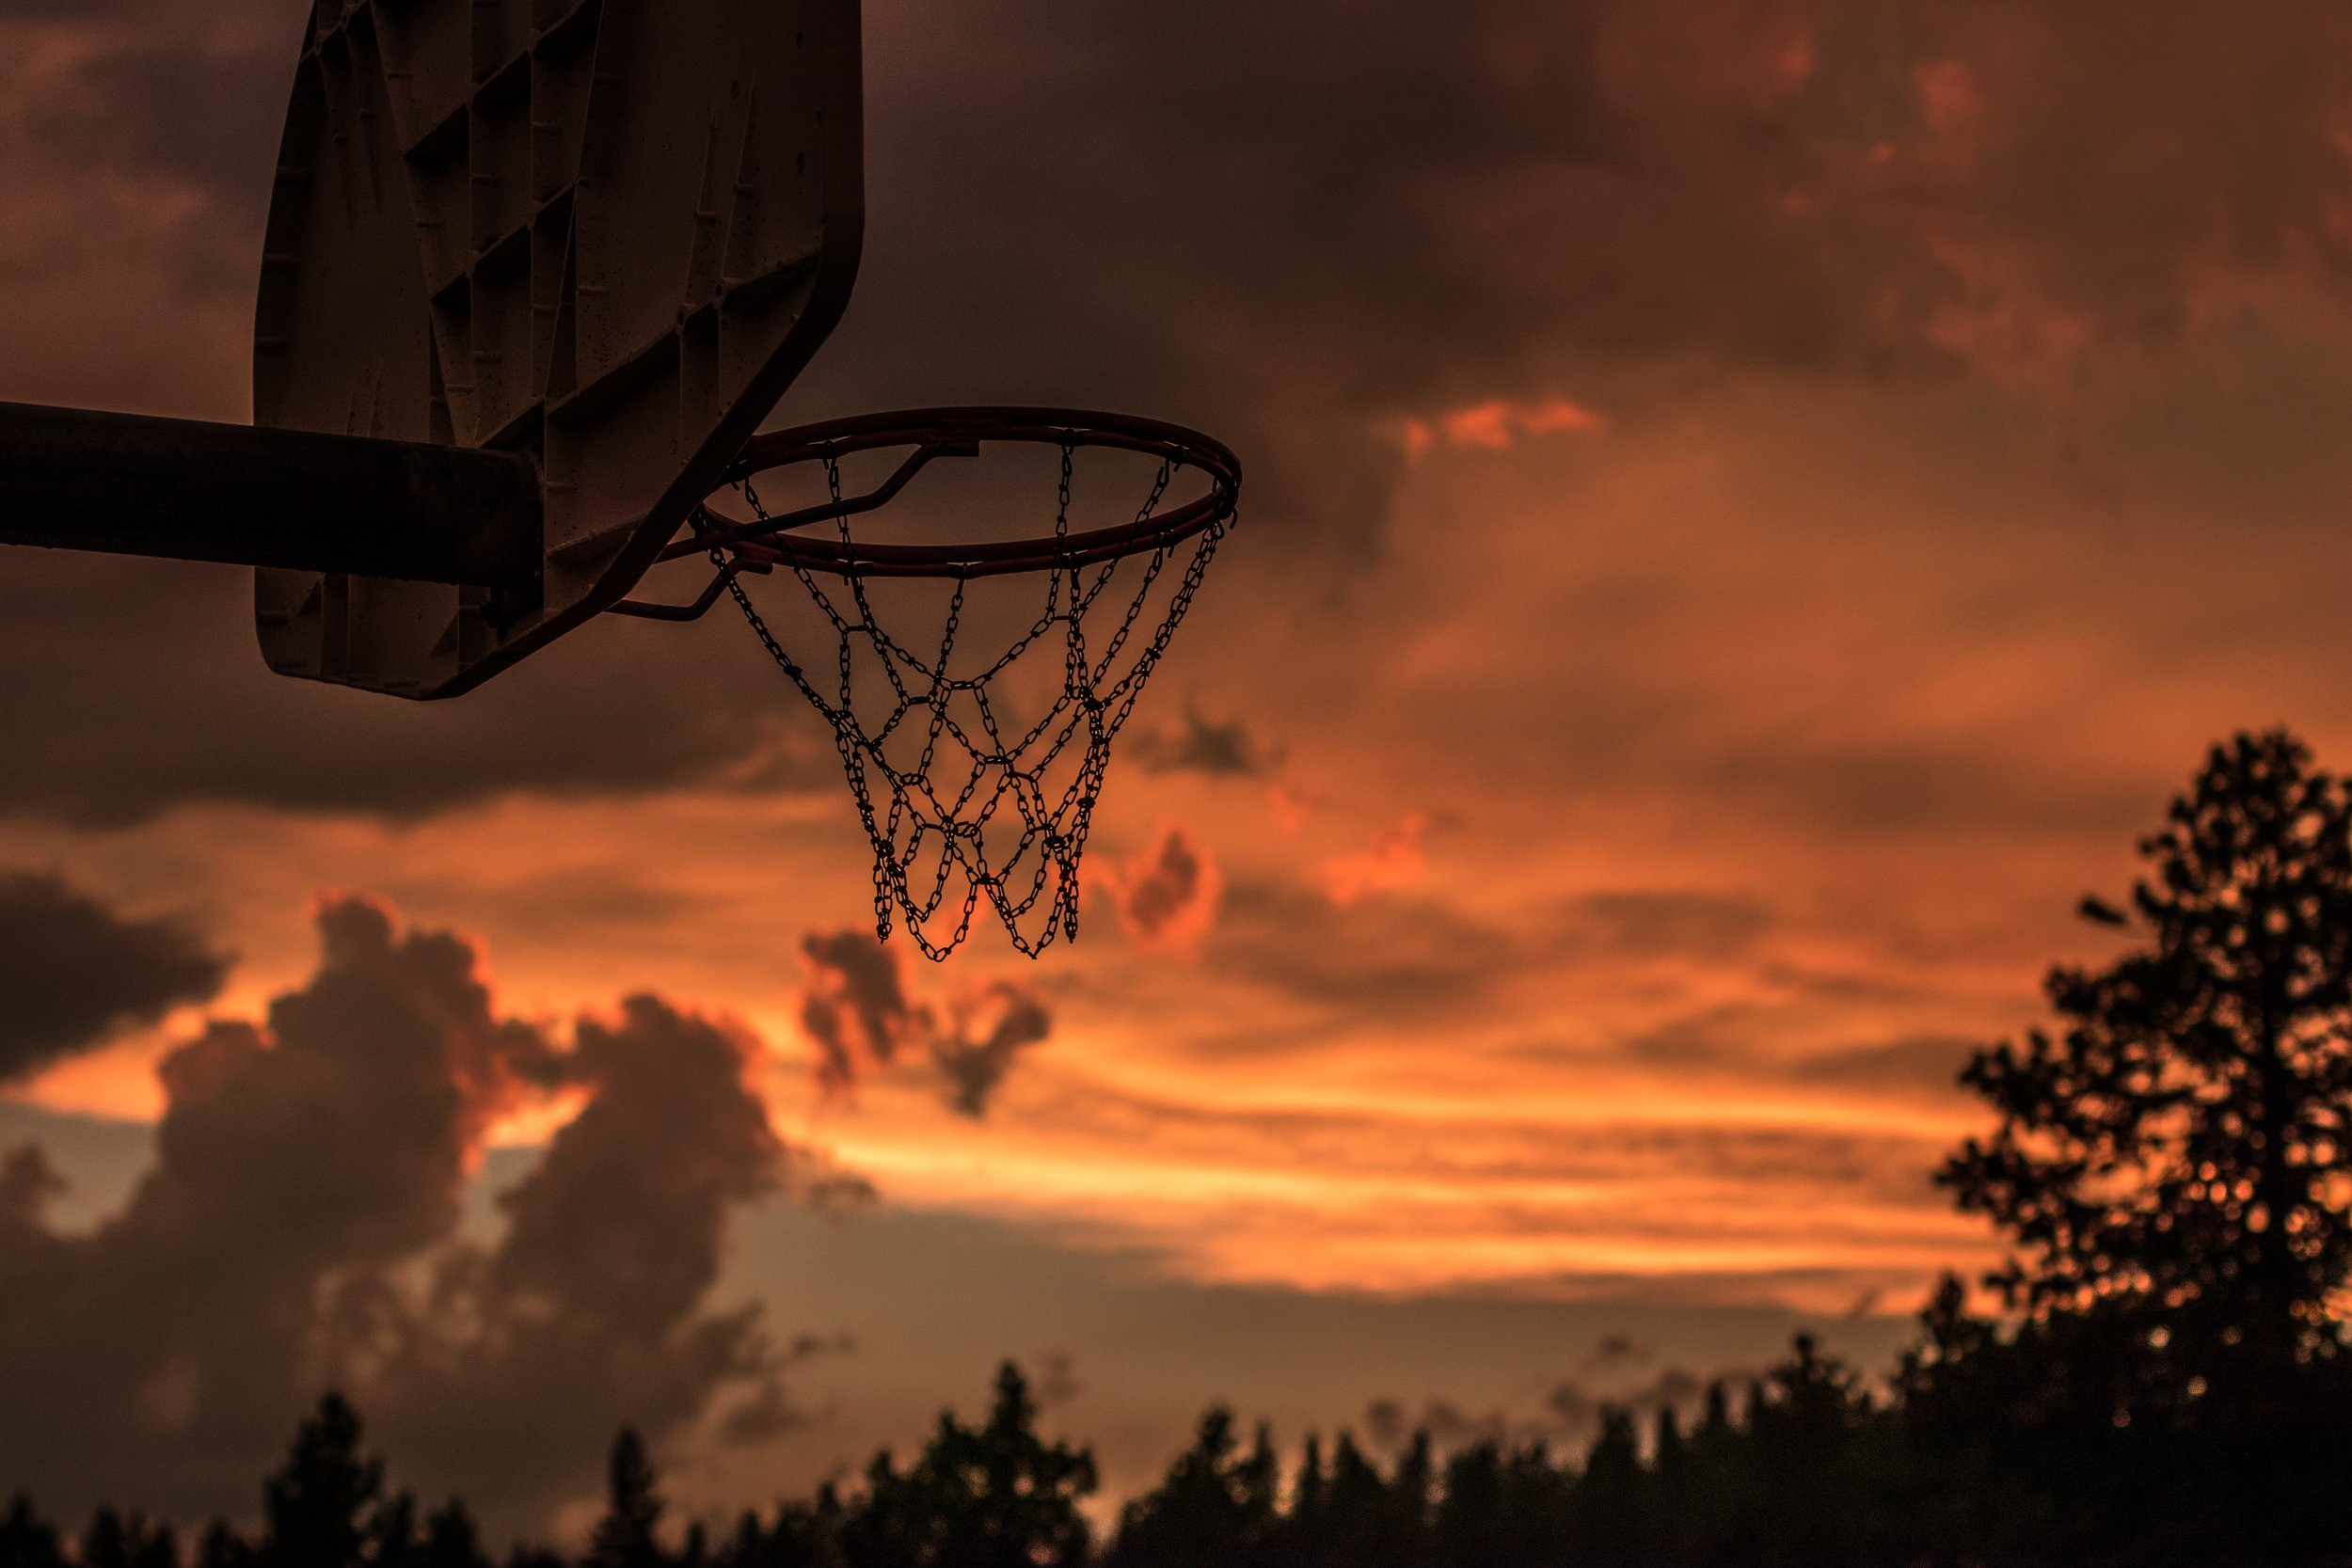 4k-wallpaper-backlit-basketball-1331750.jpg